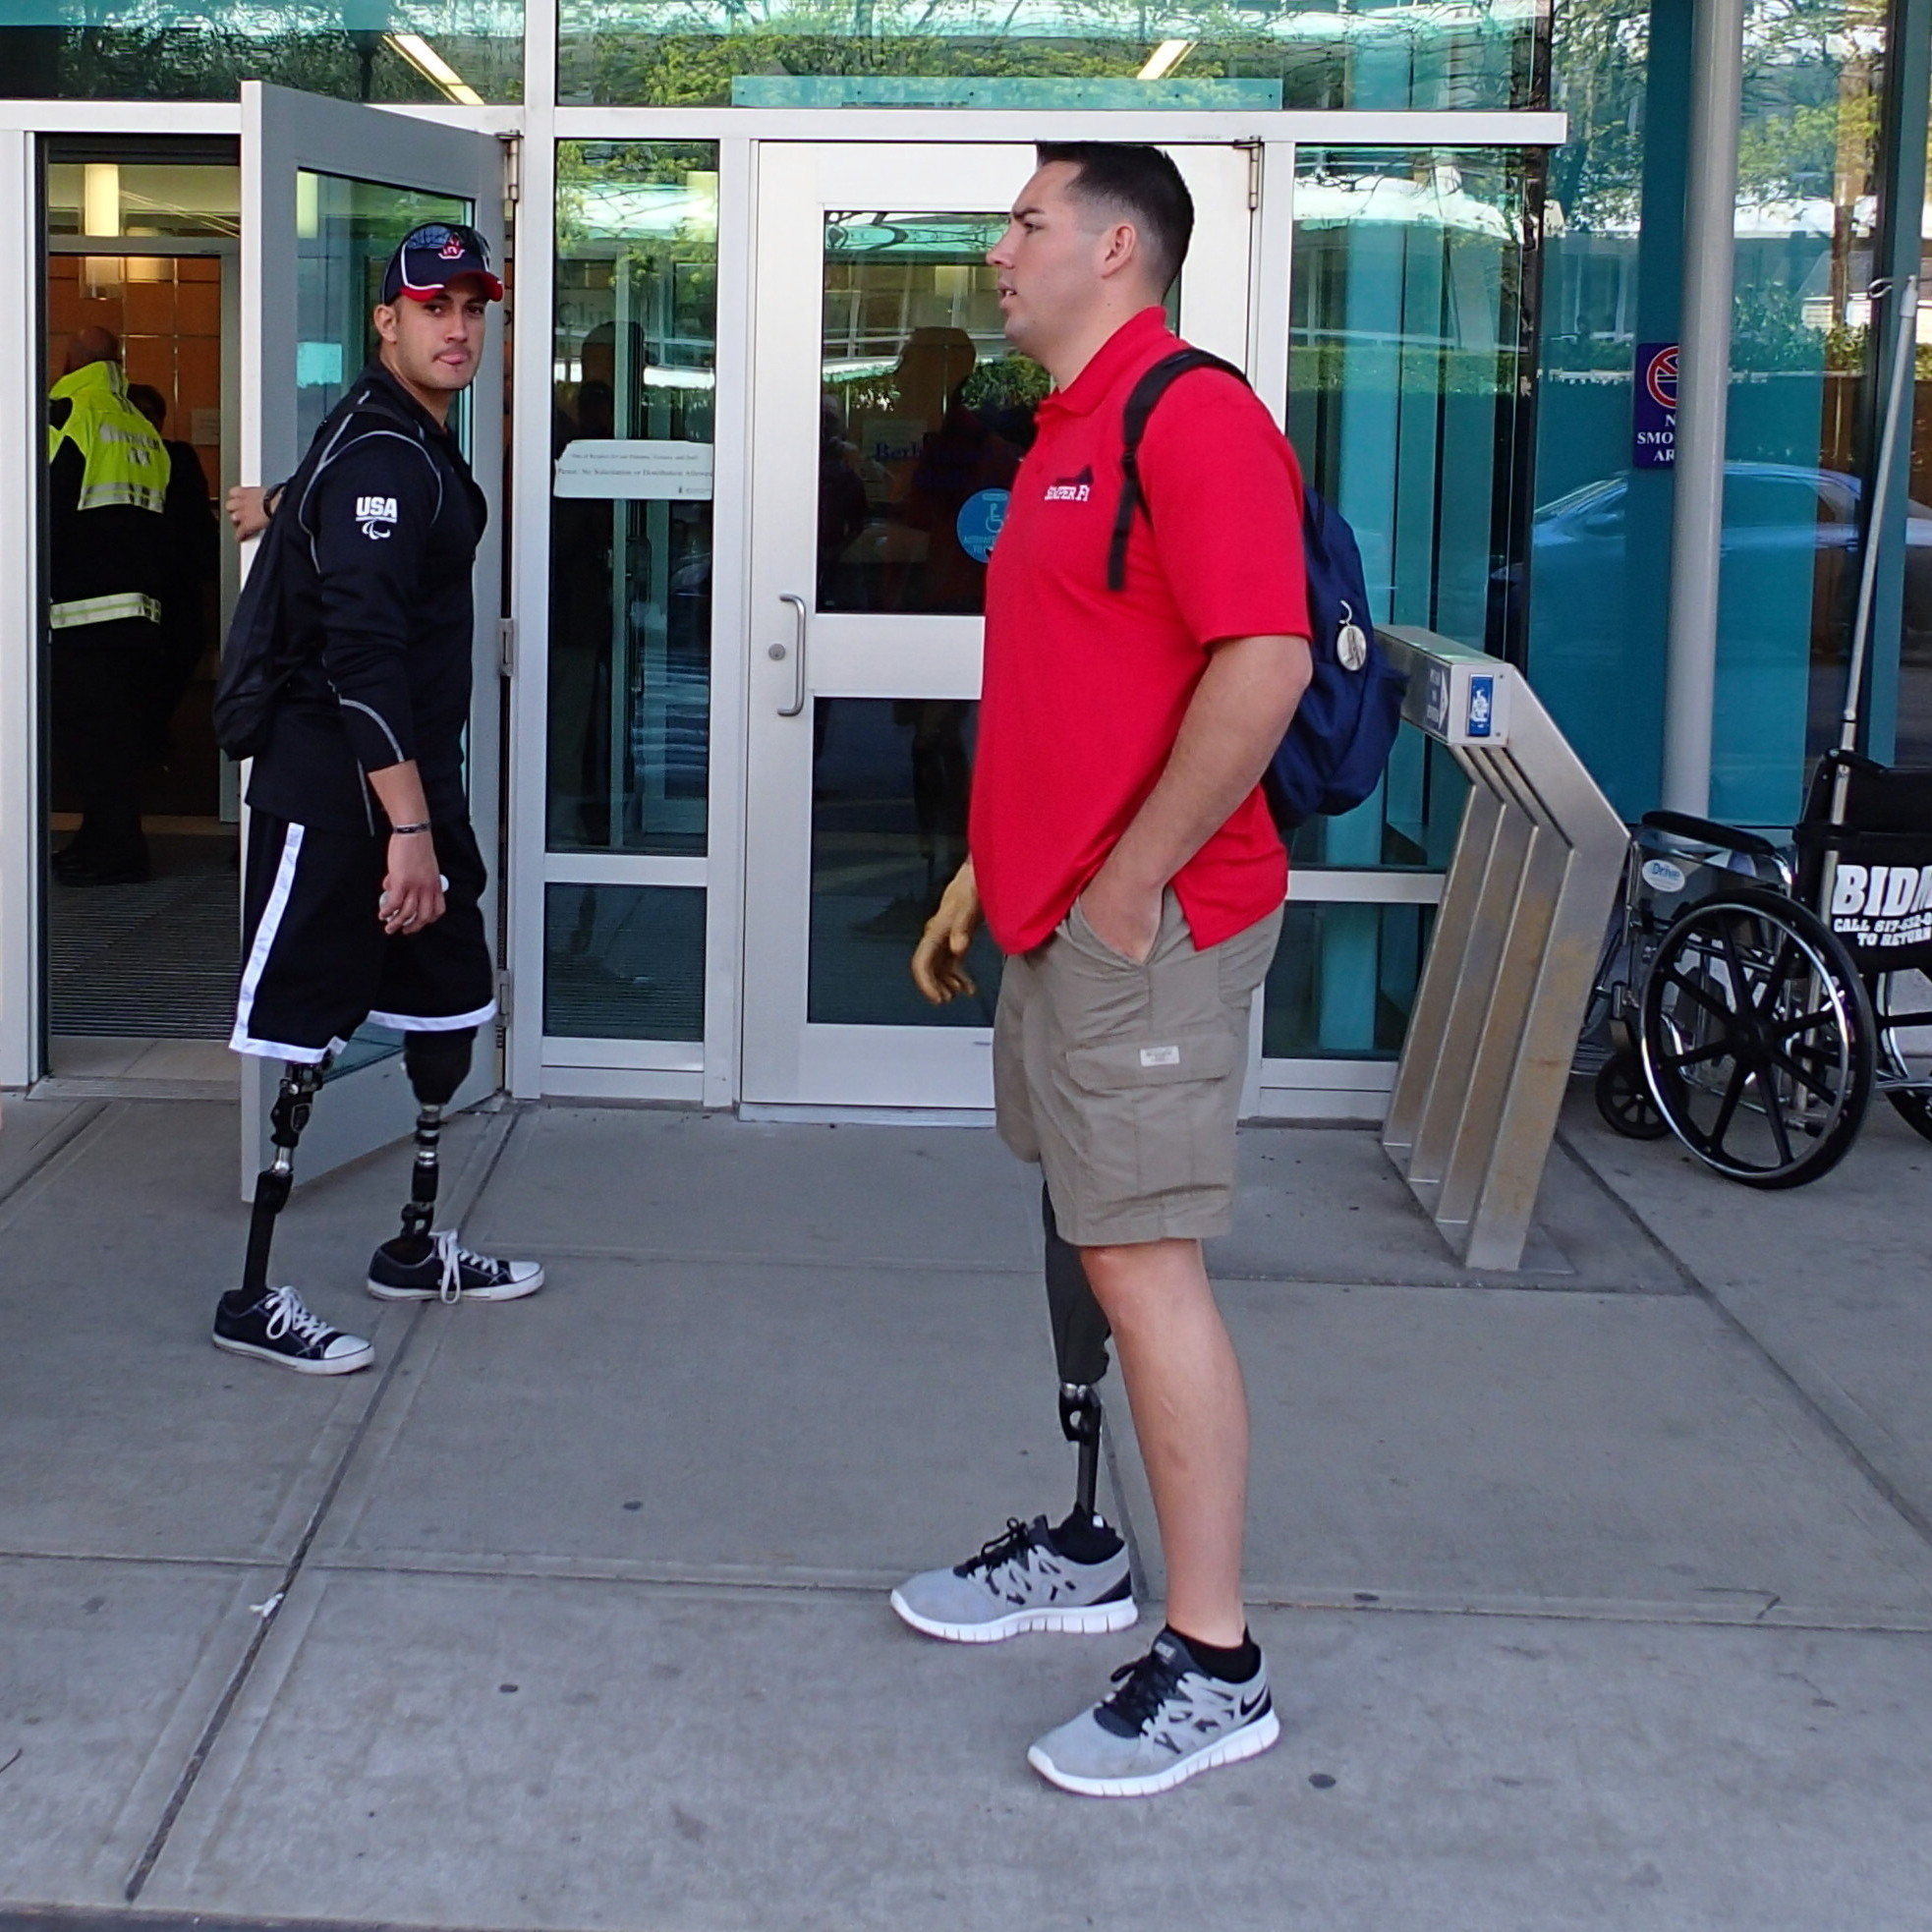 Sgt. Gabe Martinez (left) and Marine Capt. Cameron West visited amputee patients from the Boston Marathon bombing at Beth Israel Deaconess Hospital.